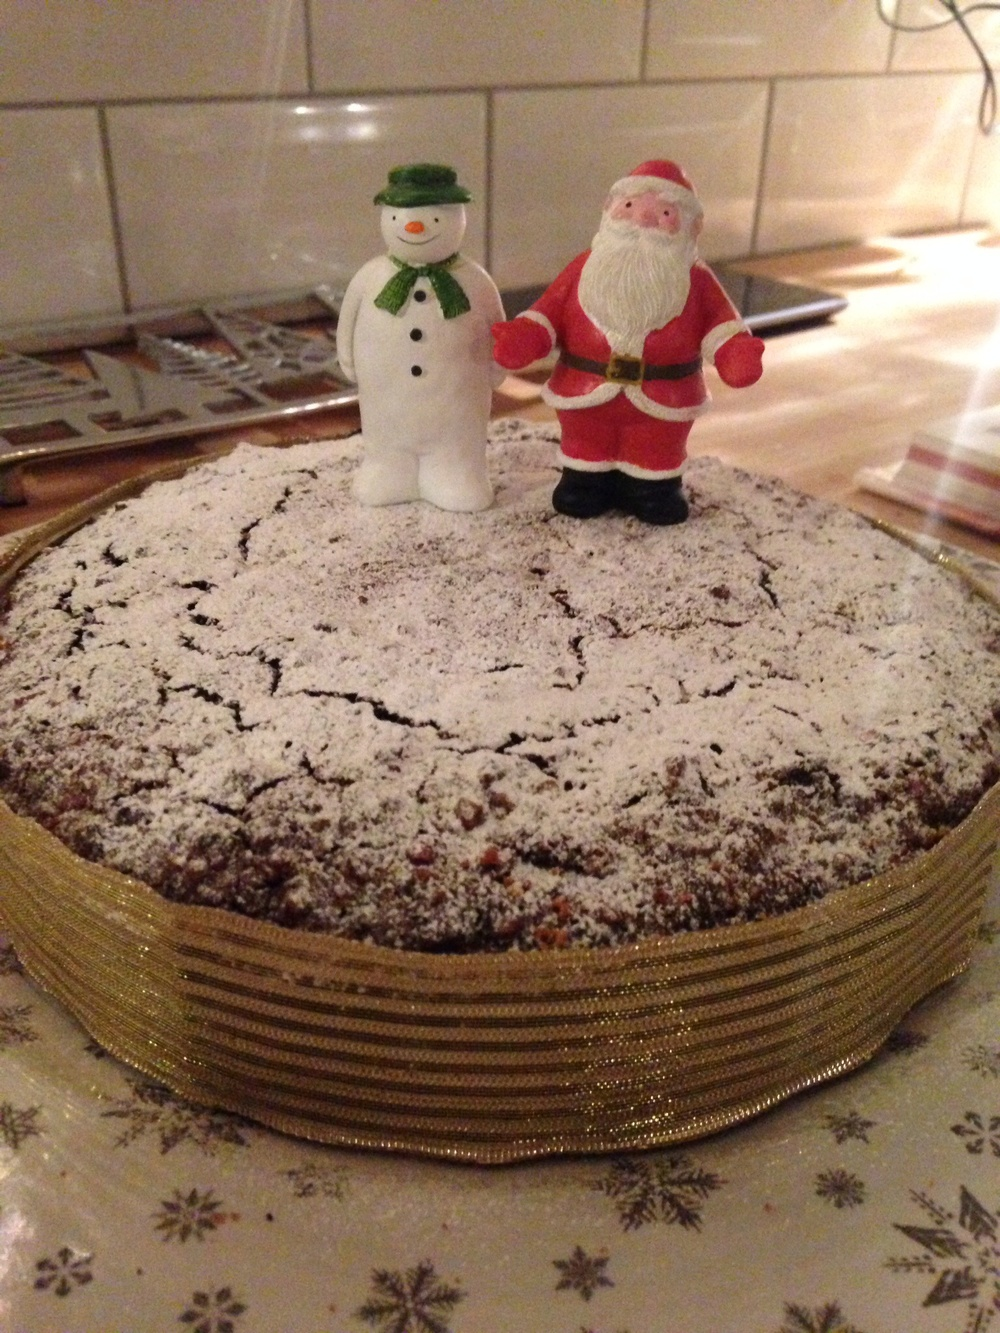 This year's Christmas cake is an Italian chocolate and nut cake.